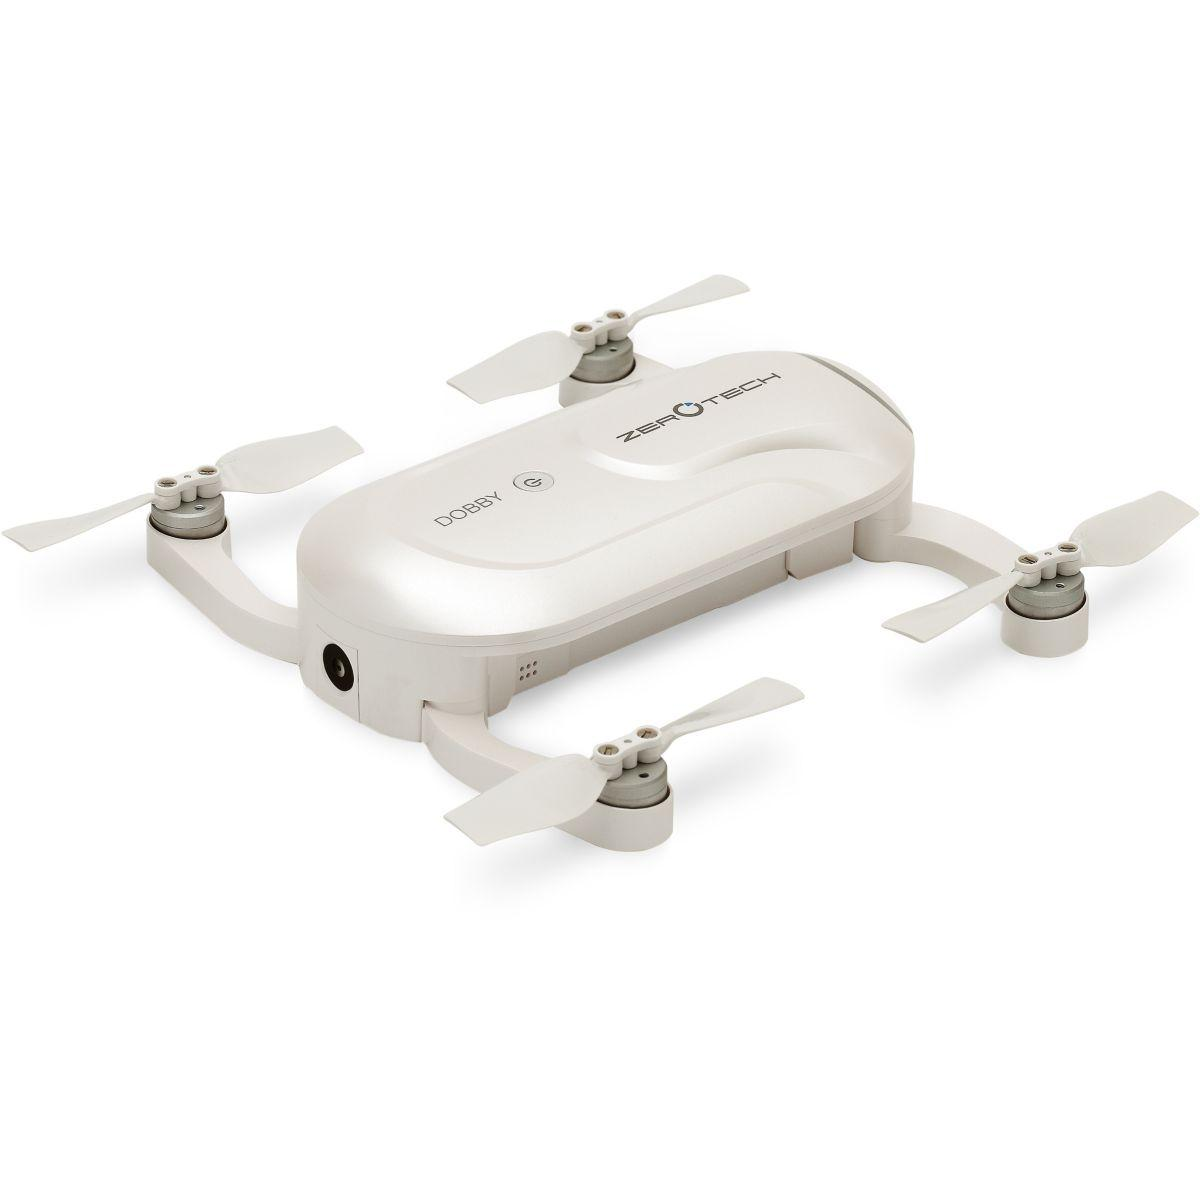 Drone zerotech dobby (photo)